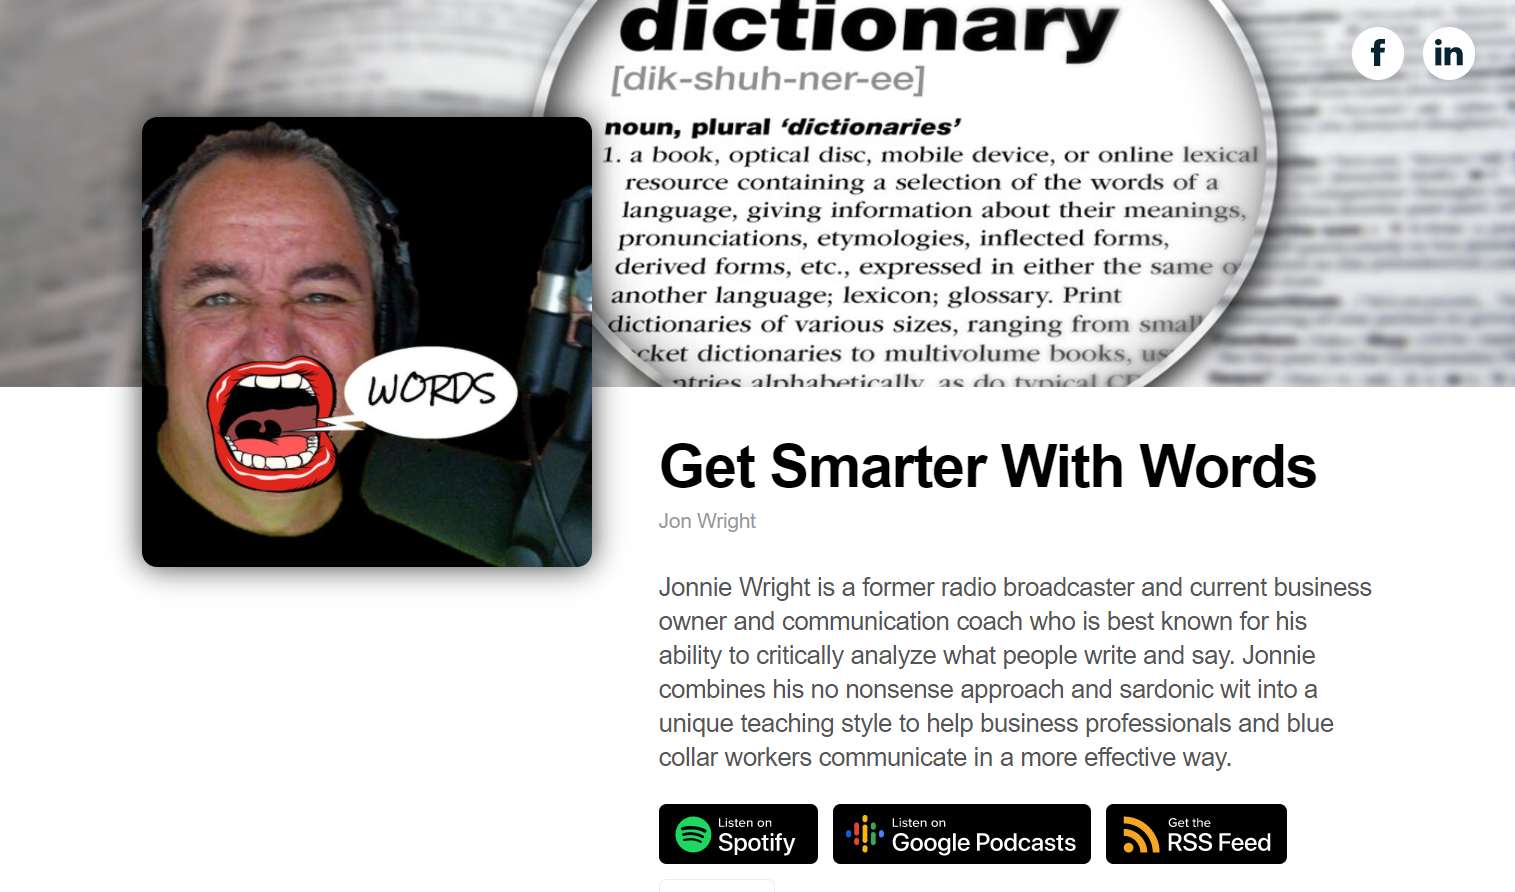 Get Smarter With Words Podcast